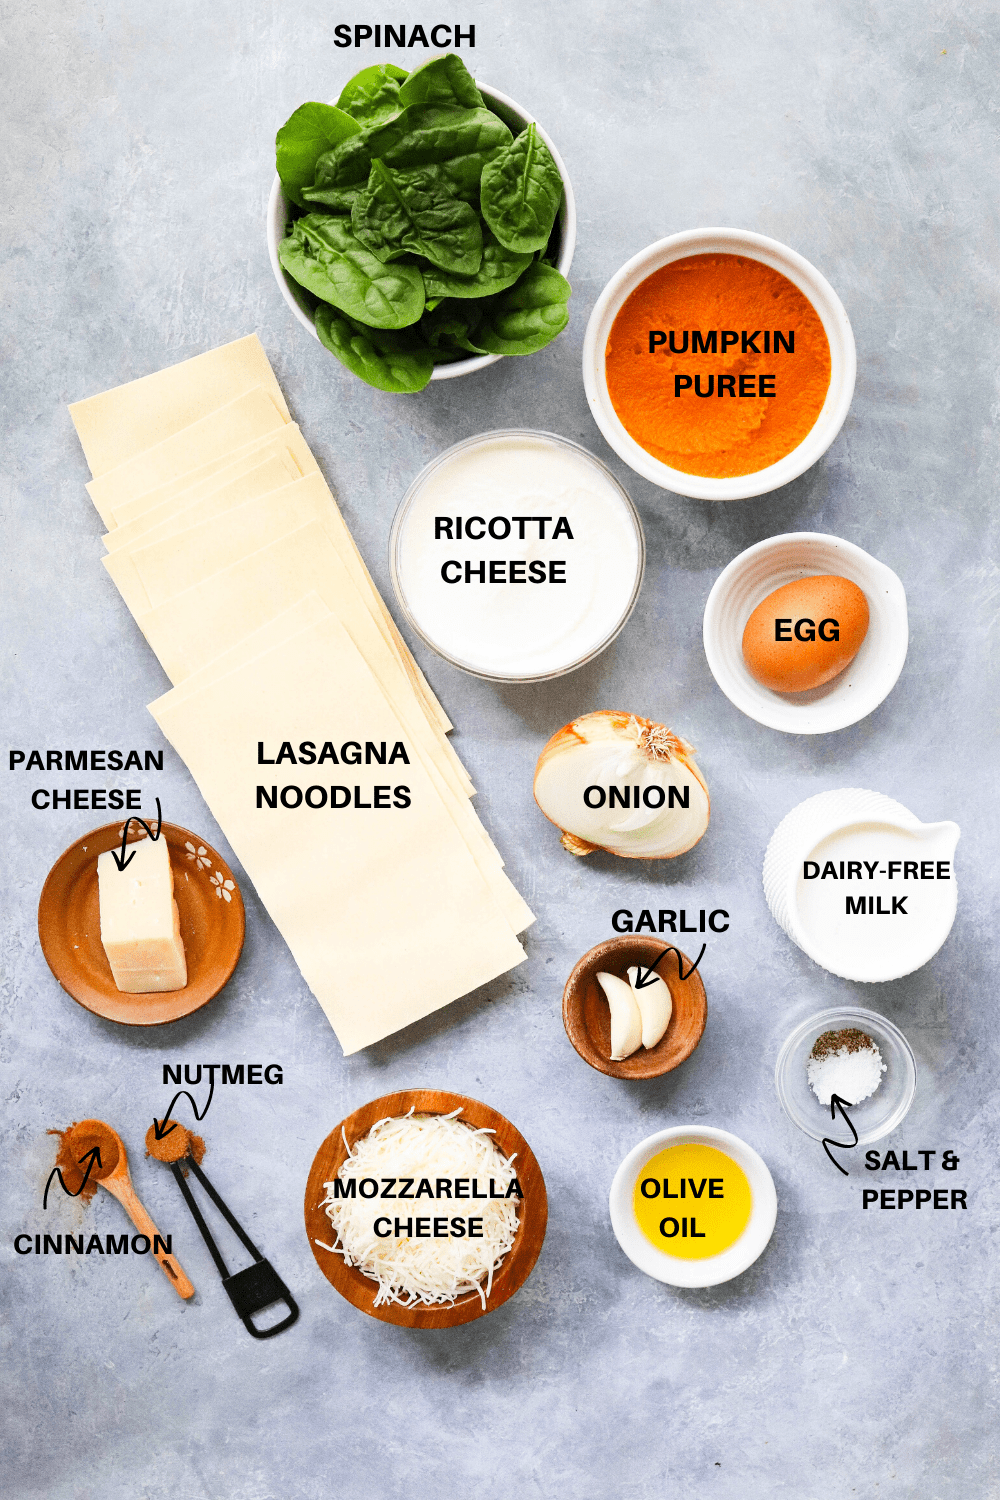 spinach, pumpkin, lasagna noodles, ricotta cheese, egg and onion on a gray board